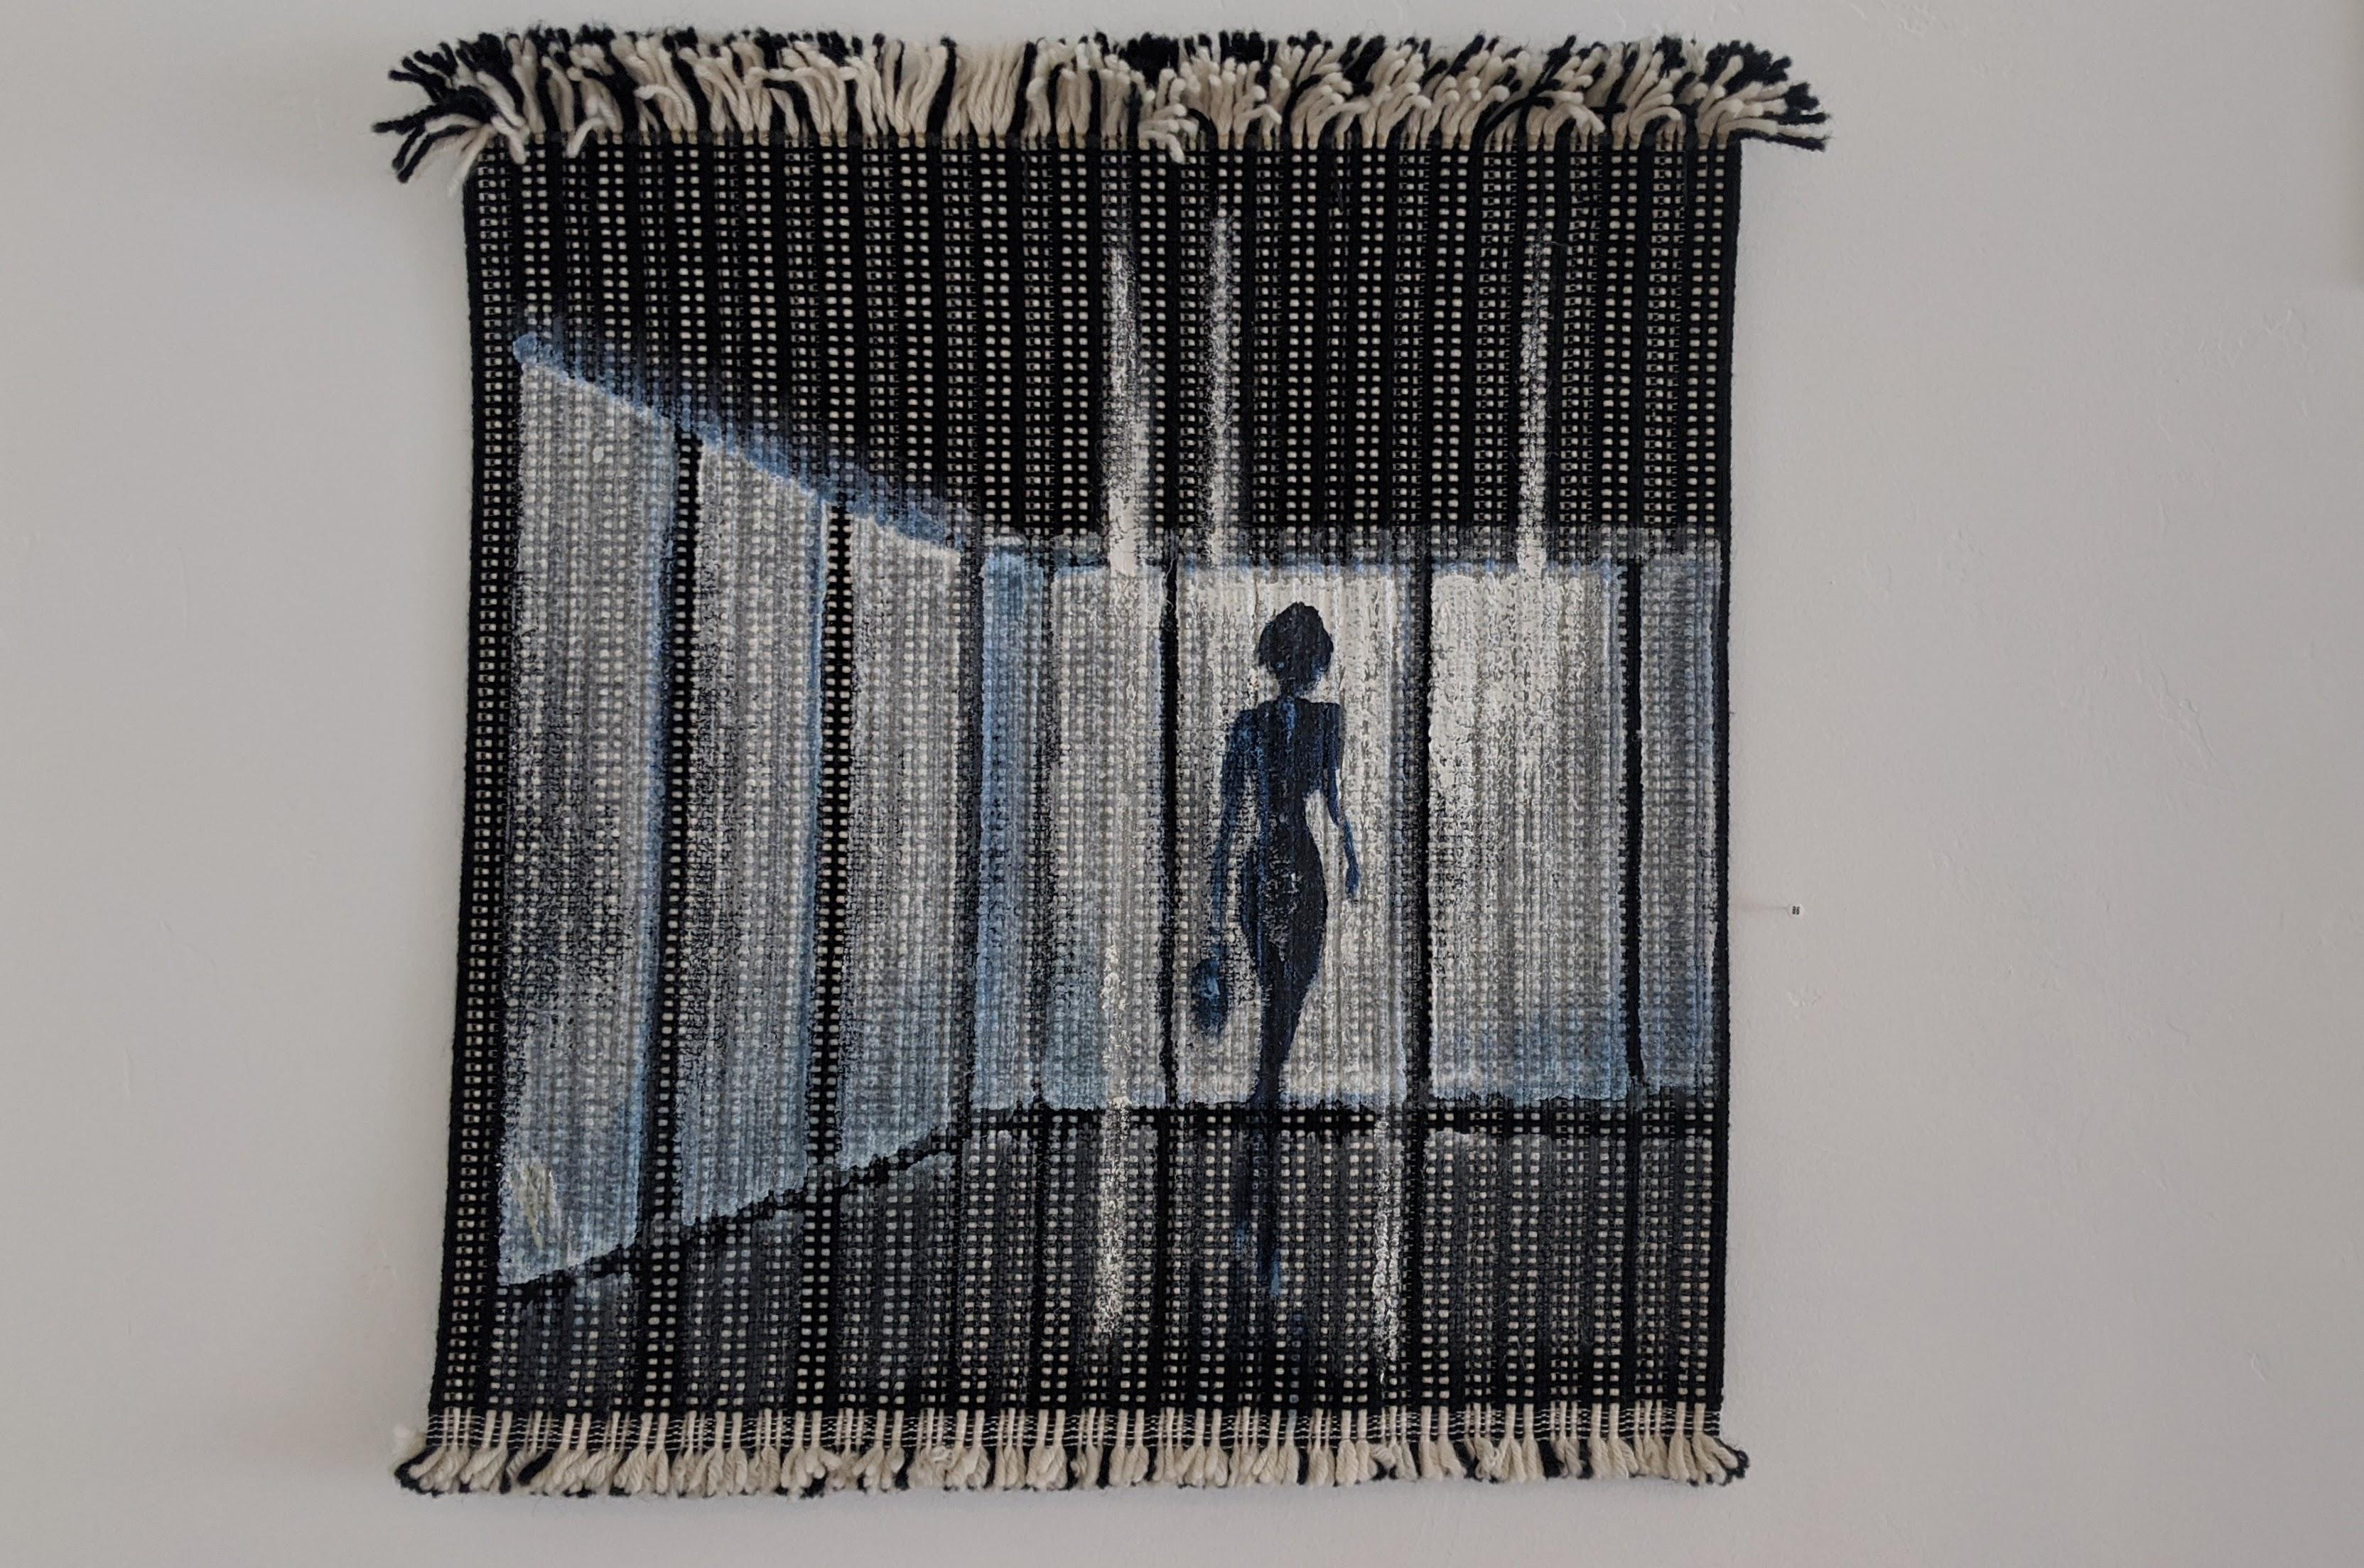 Oil Painting, Wool Canvas, Blue, Hand Woven Textile Series III by Mendel Samayoa